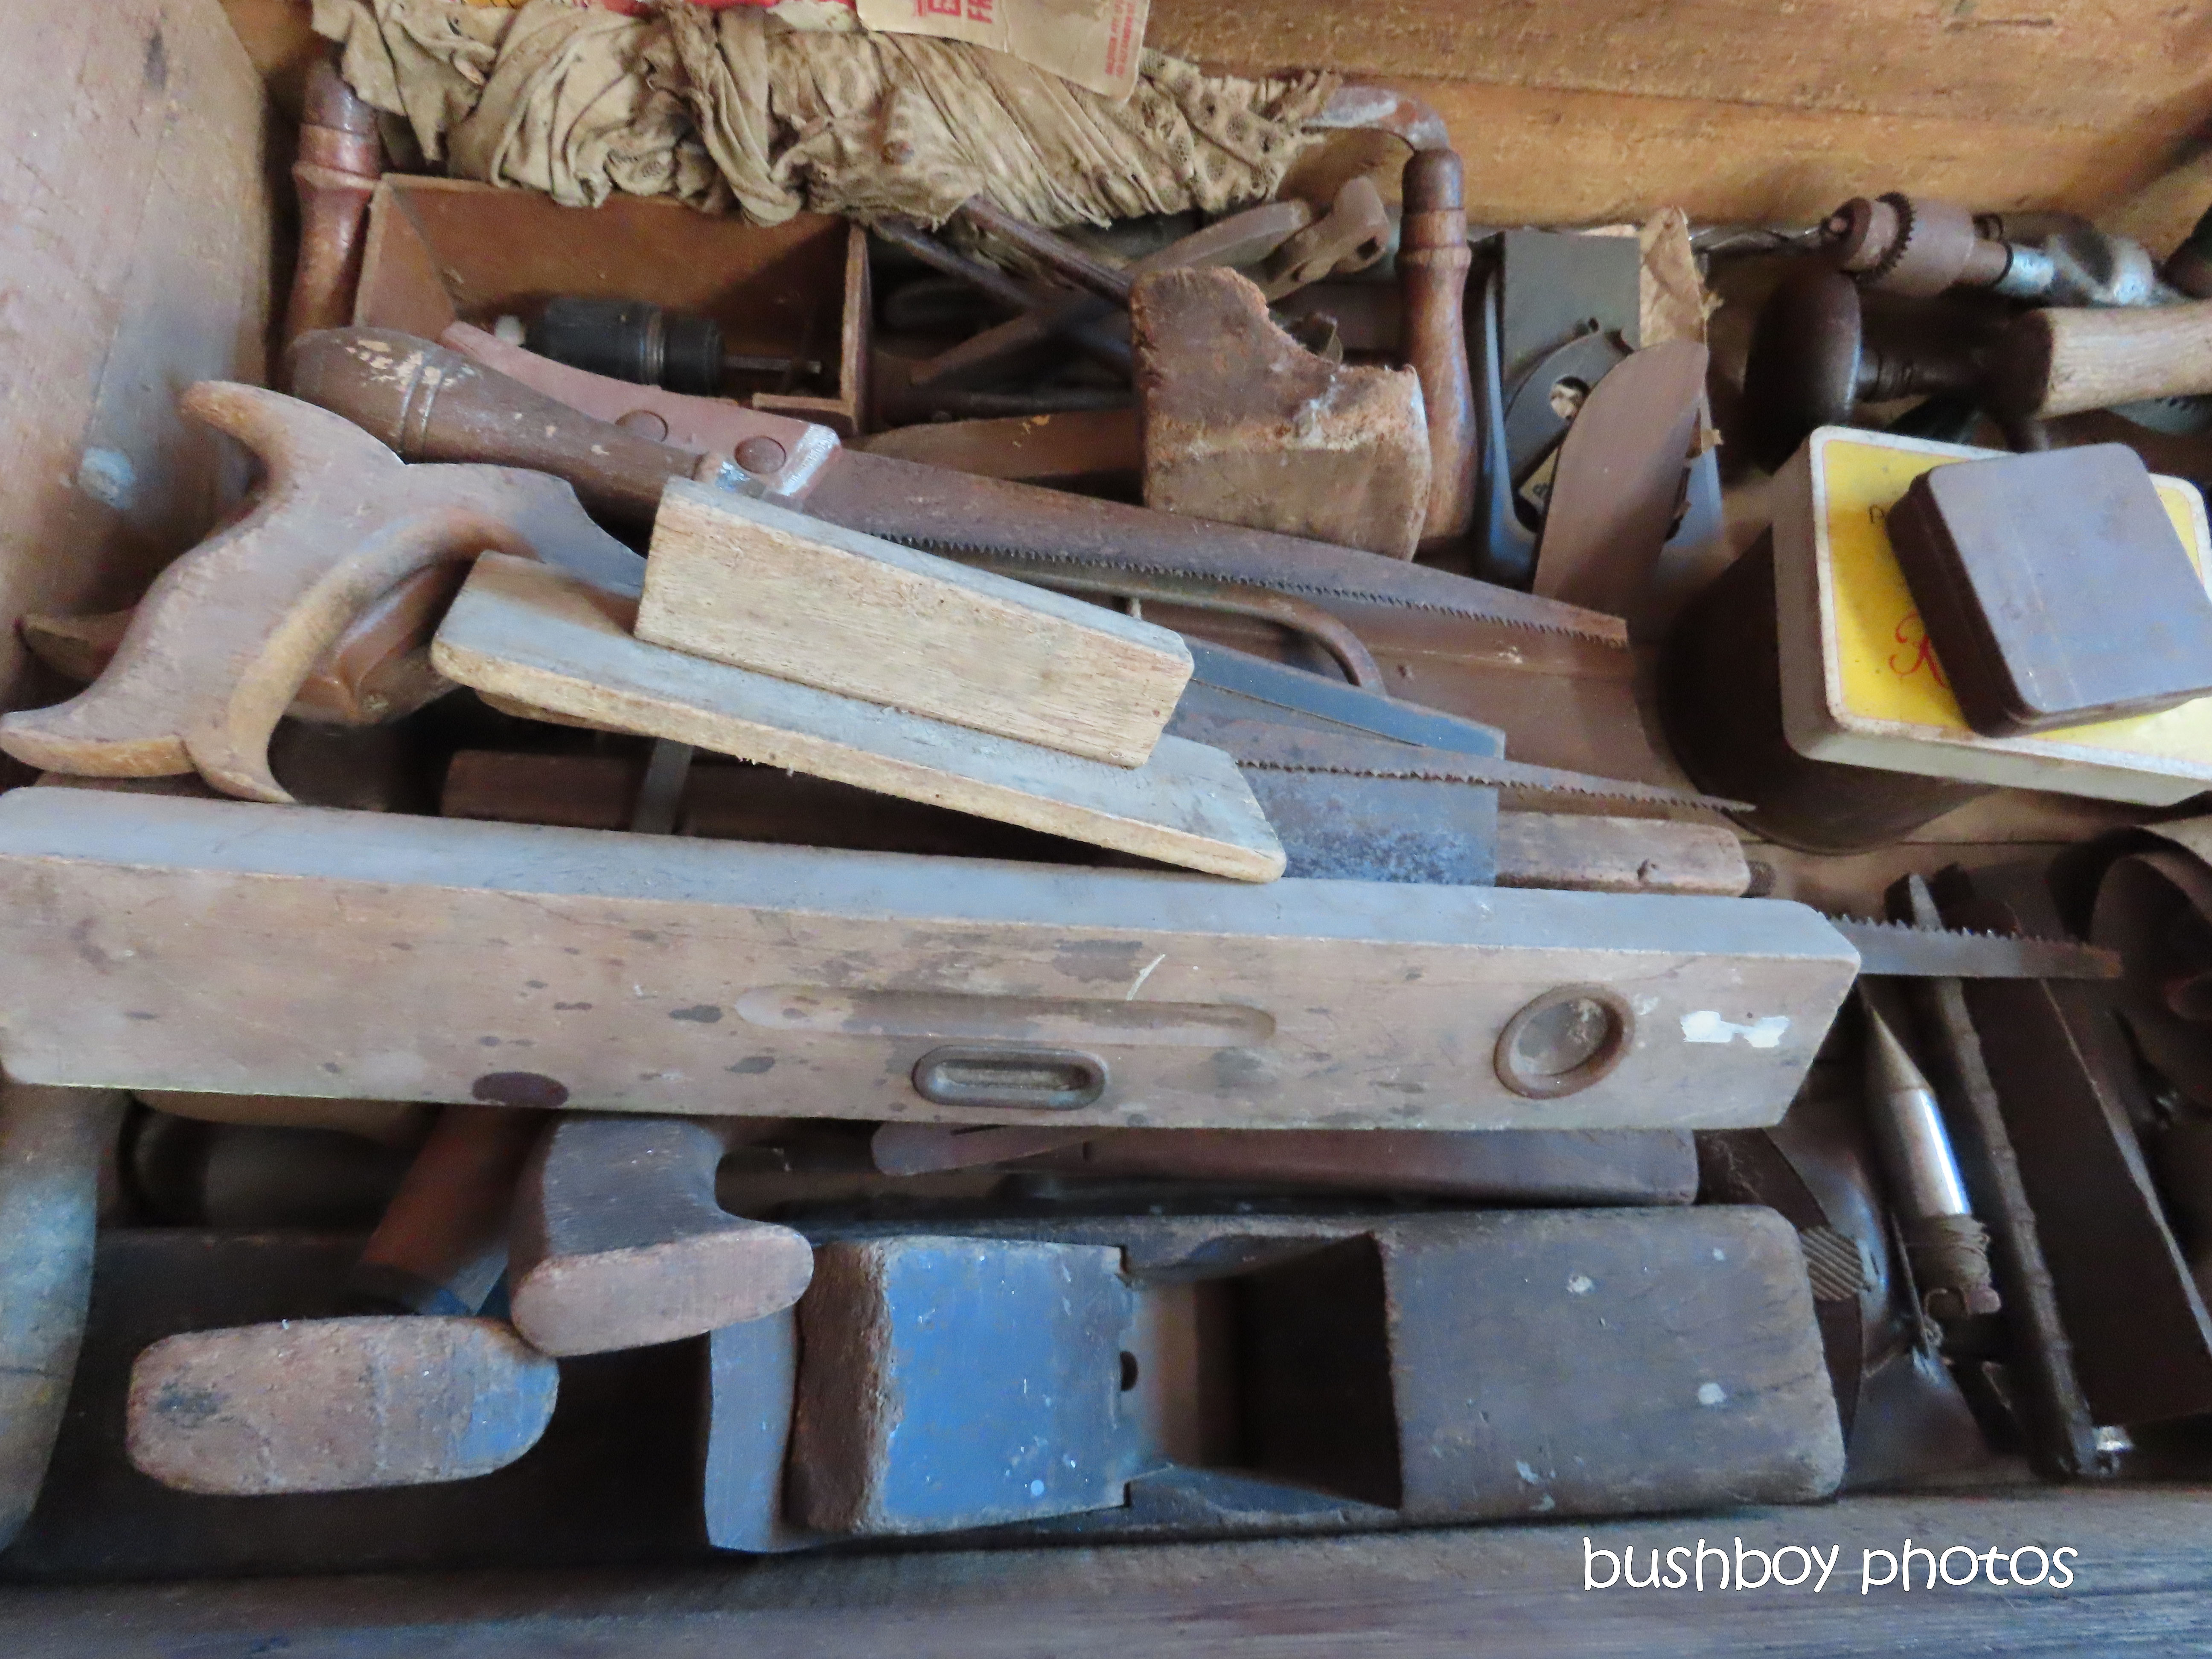 toolbox_grandfathers_tools1_named_home_jackadgery_sept 2019